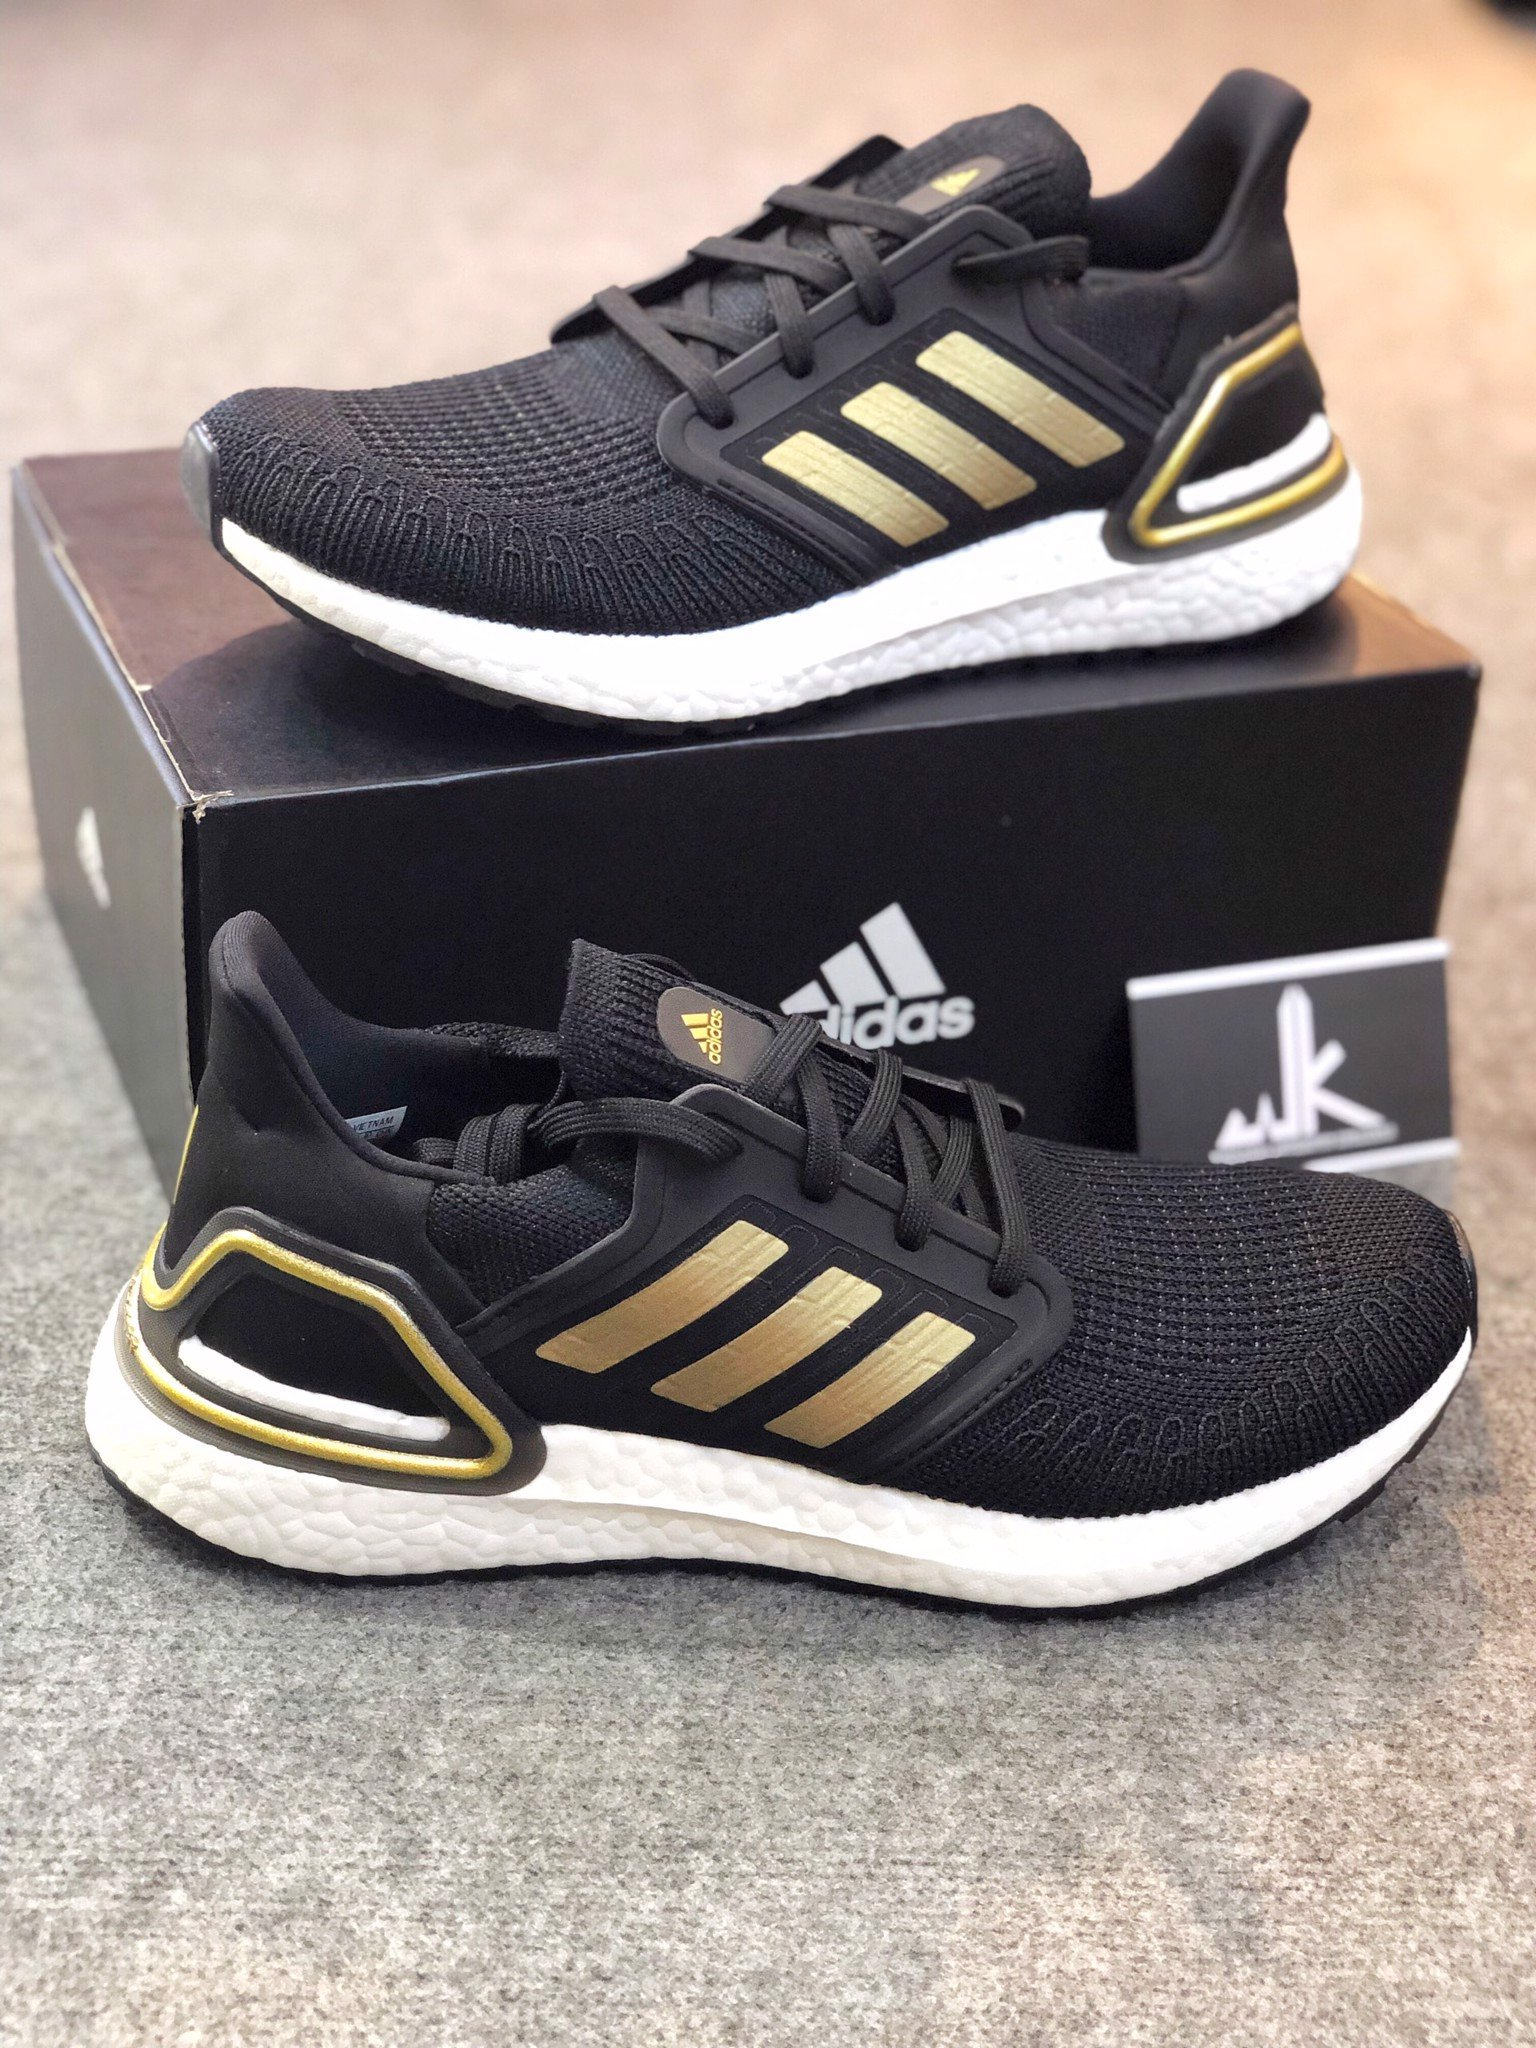 EE4393 - Ultraboost 2020 Consortium Black White Gold